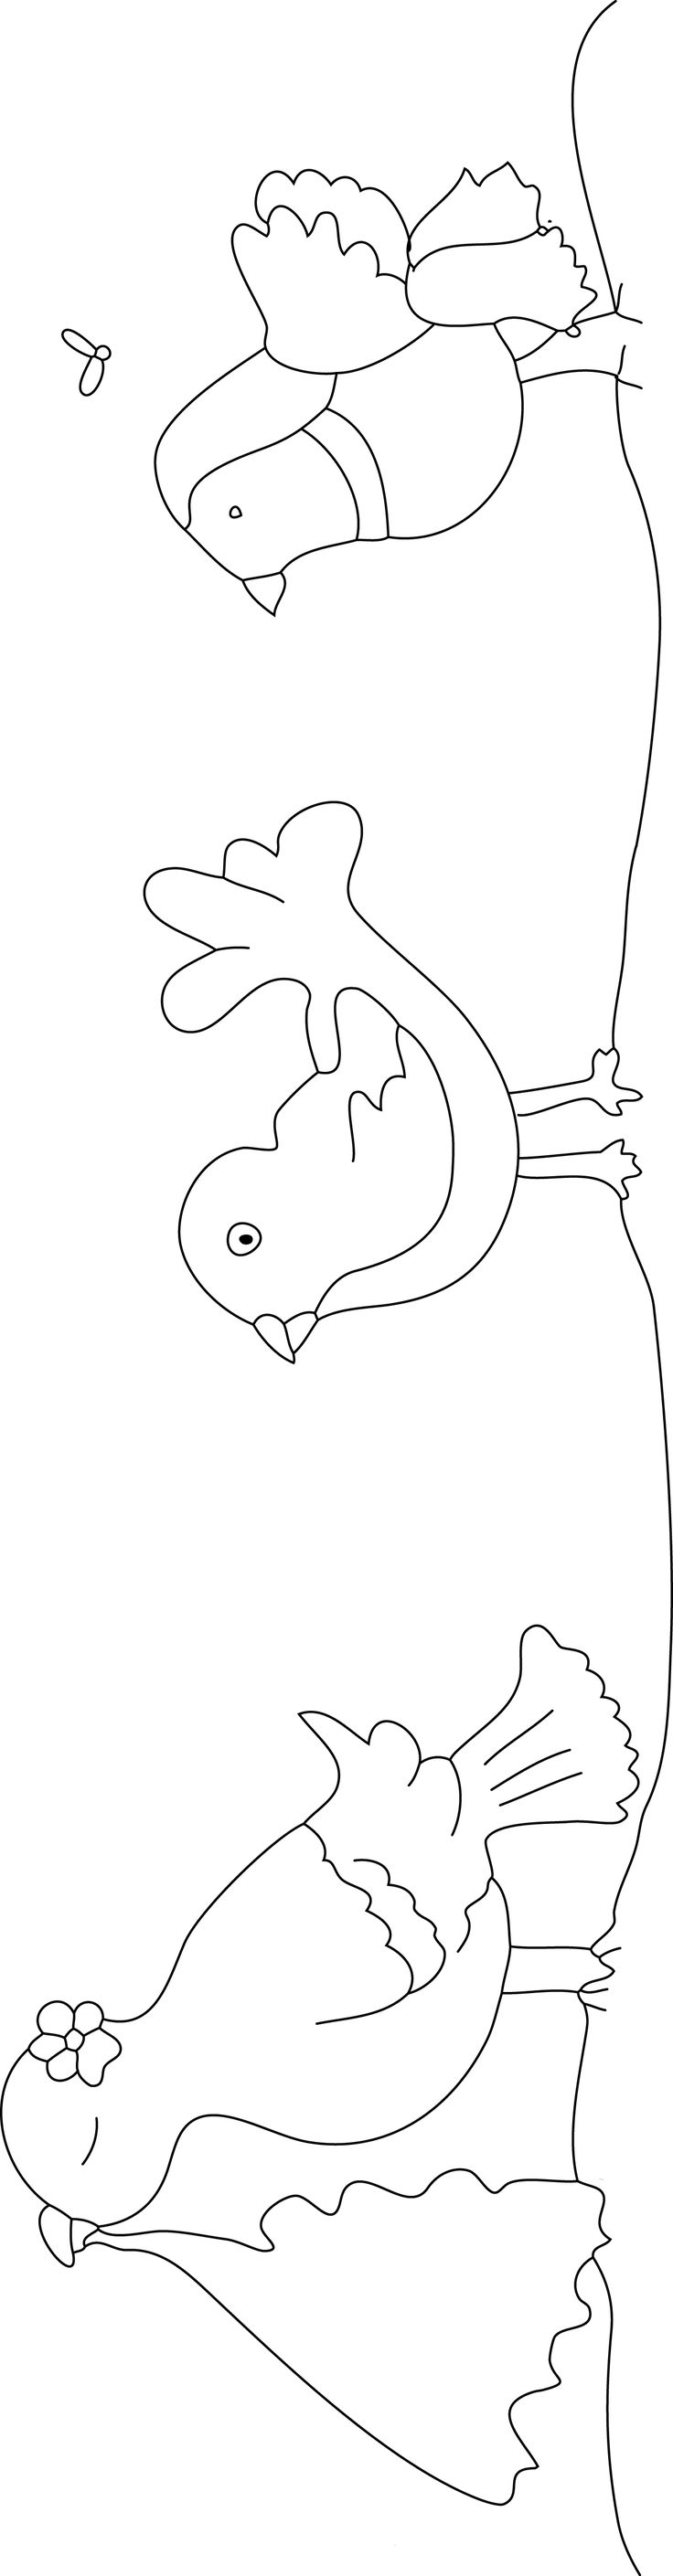 Let's color Pica, Cucut and Pardal!!! Download it and color it!